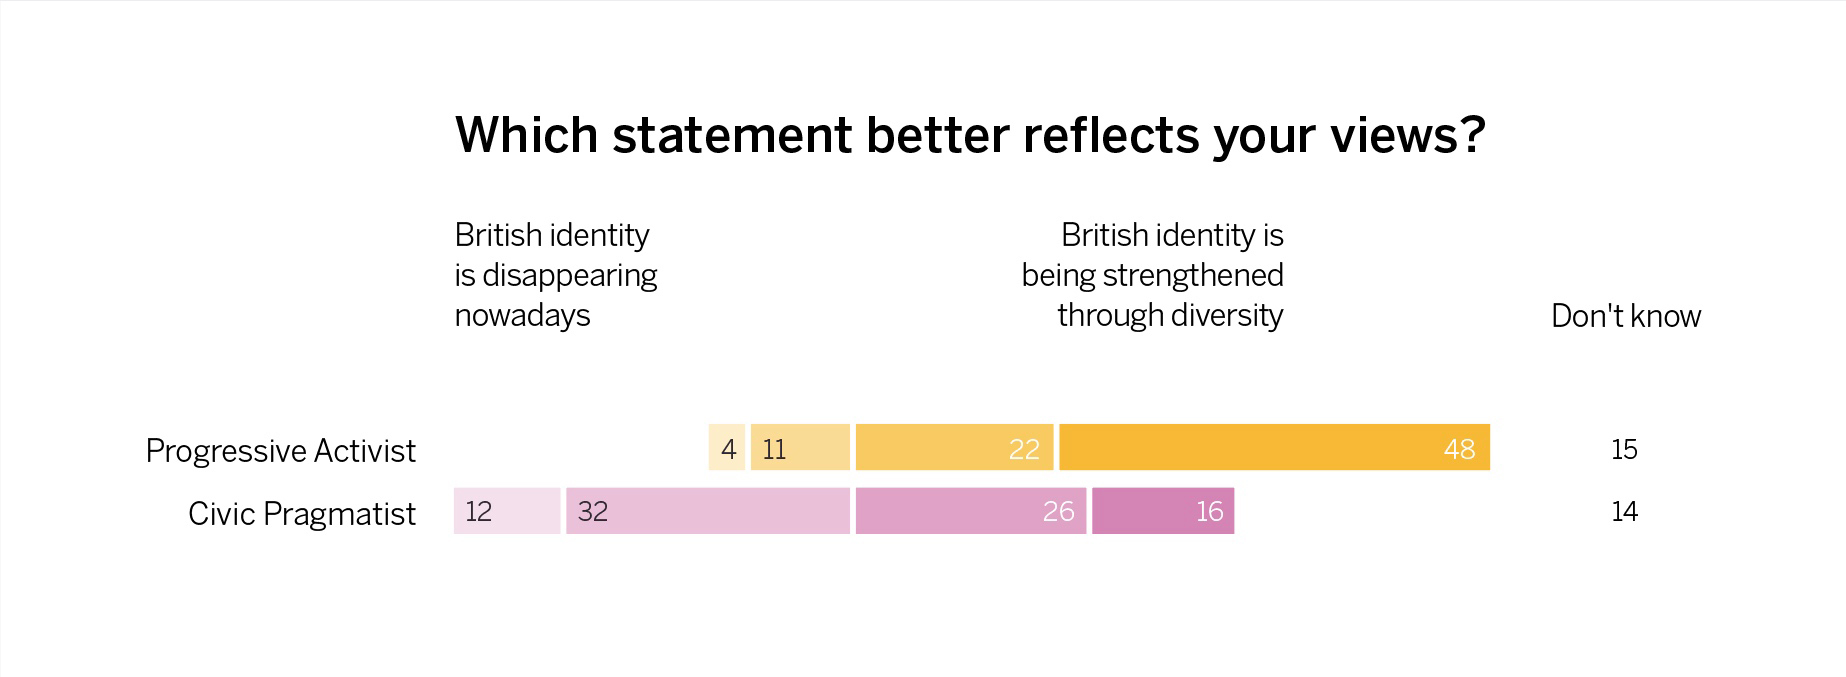 Agreement and disagreement about British identity and diversity